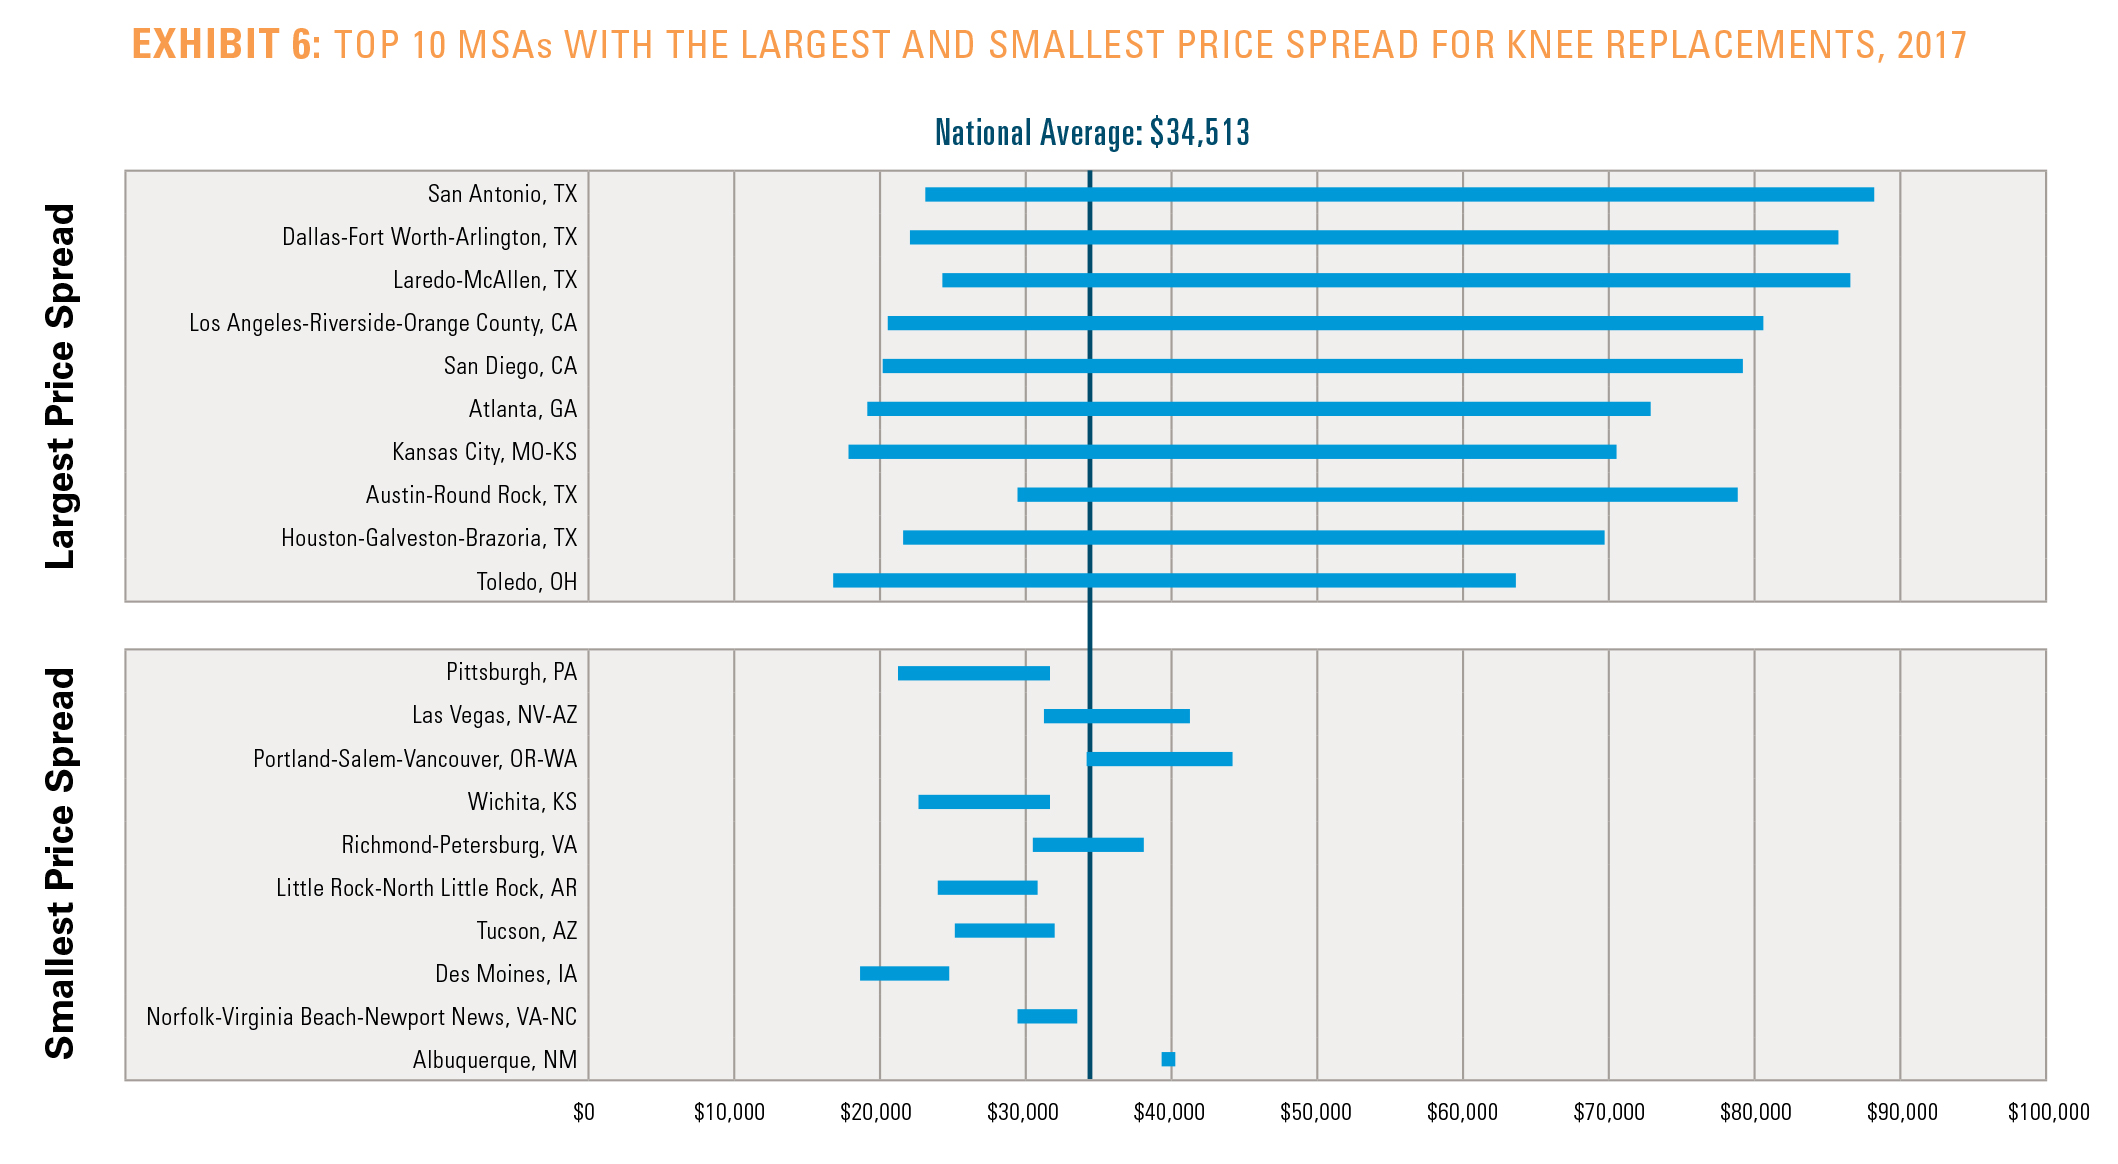 EXHIBIT 6: TOP 10 MSAs WITH THE LARGEST AND SMALLEST PRICE SPREAD FOR KNEE REPLACEMENTS, 2017